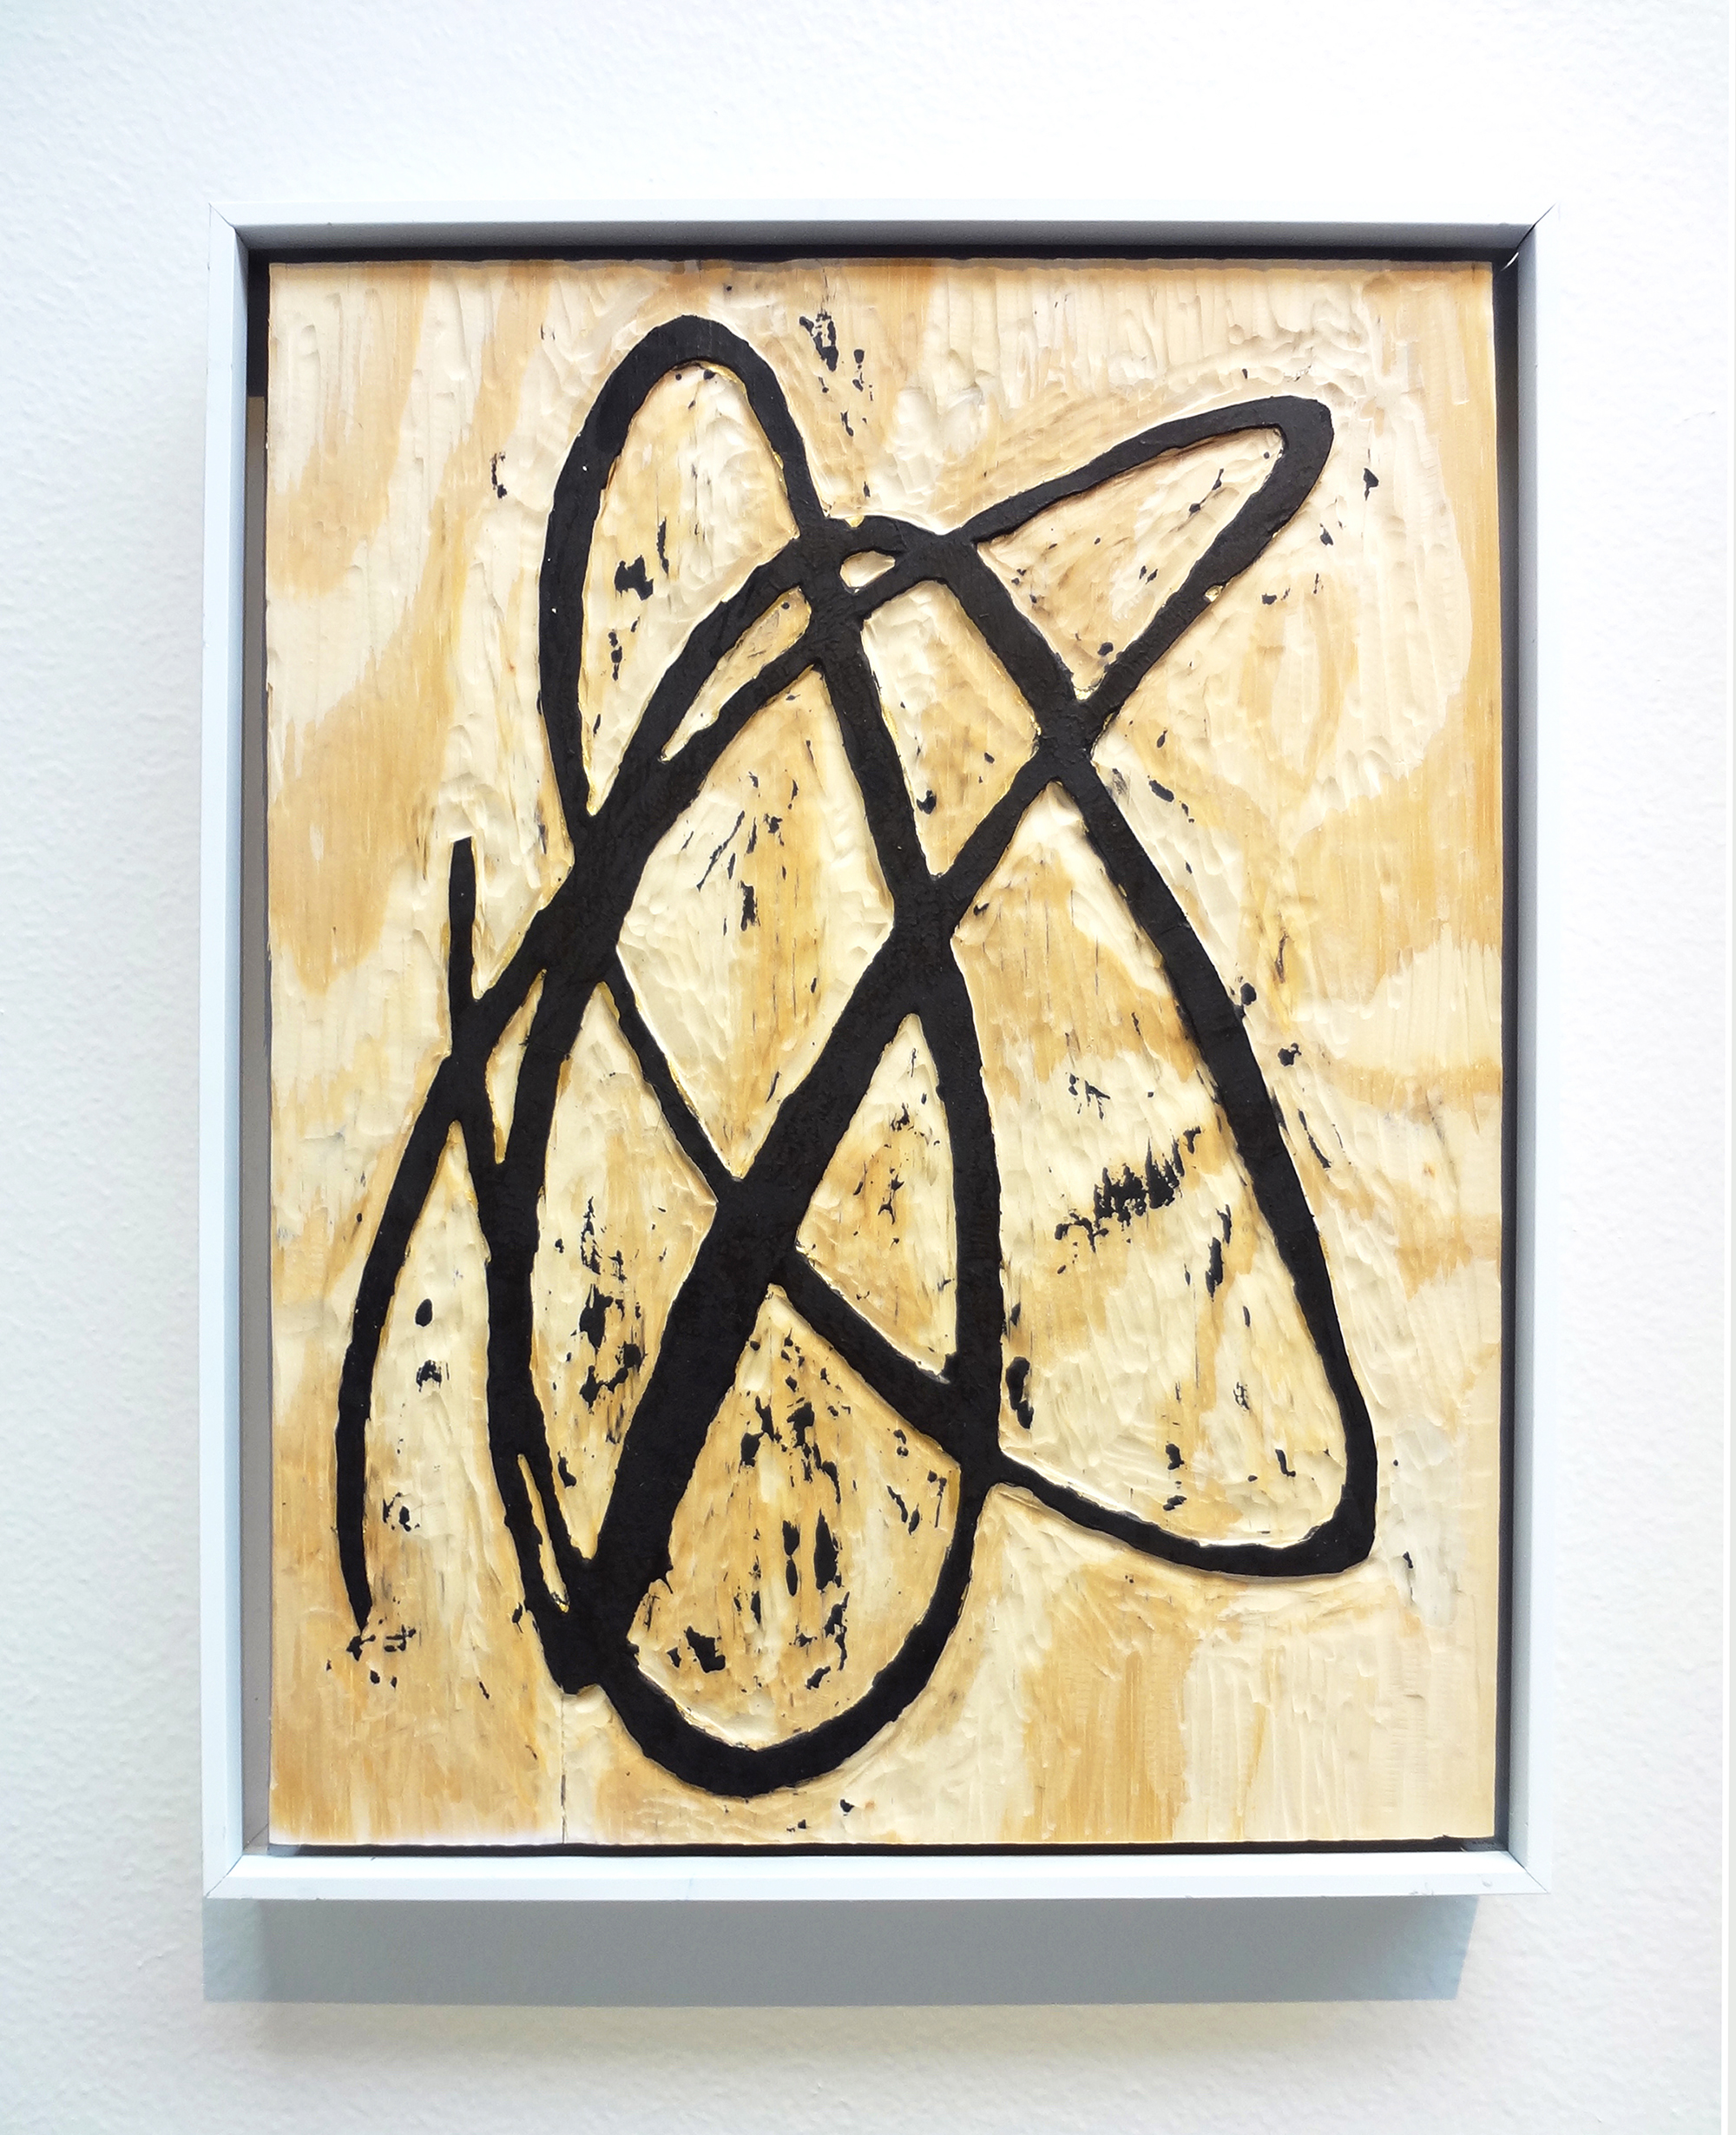 Meghan Gerety  Untitled 03 , 2015 blockprint ink on plywood 15 x 12 in.framed in aluminum